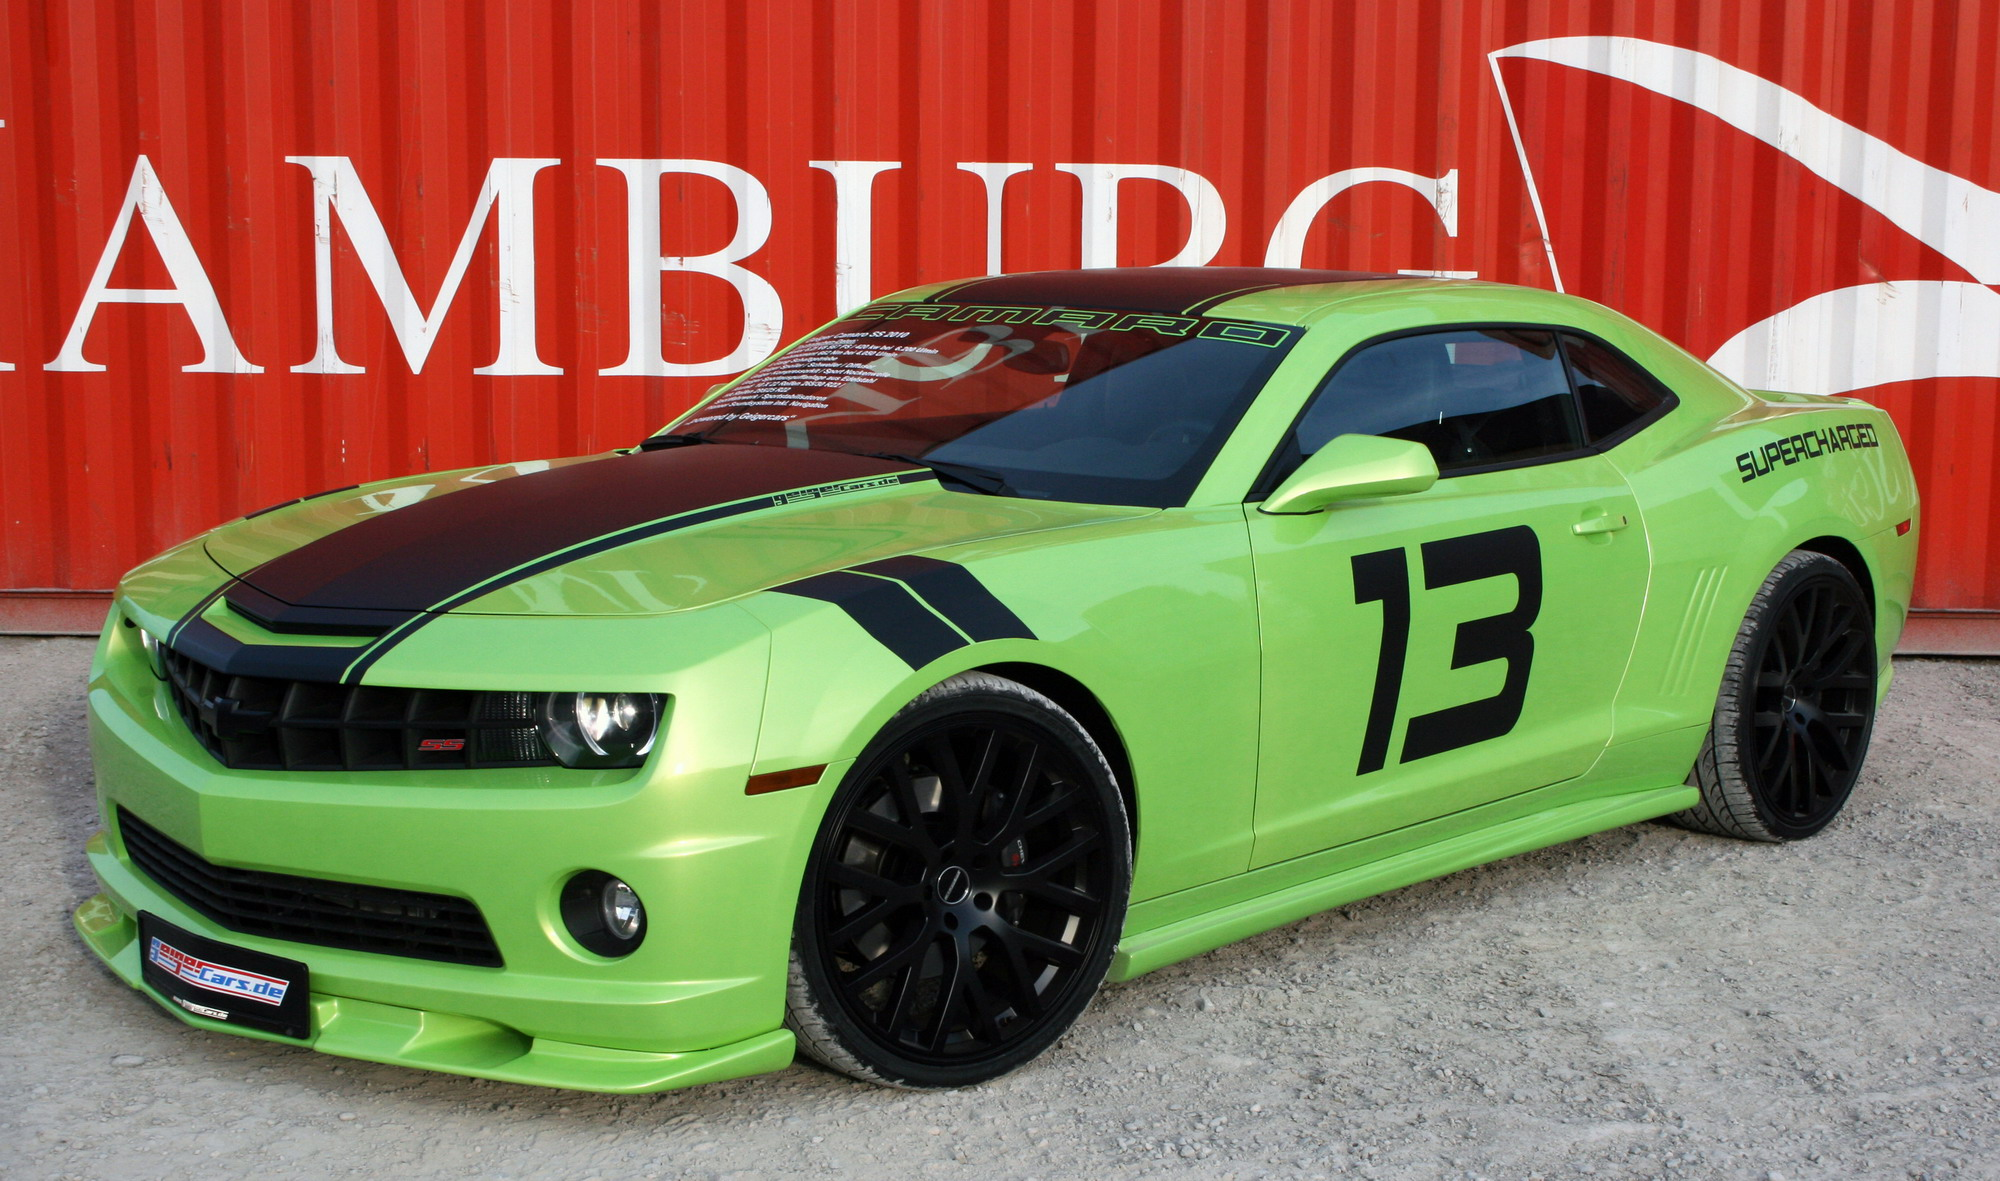 Chevy Muscle Cars >> 2011 Chevrolet Camaro Super Sport 564 HP By GeigerCars ...